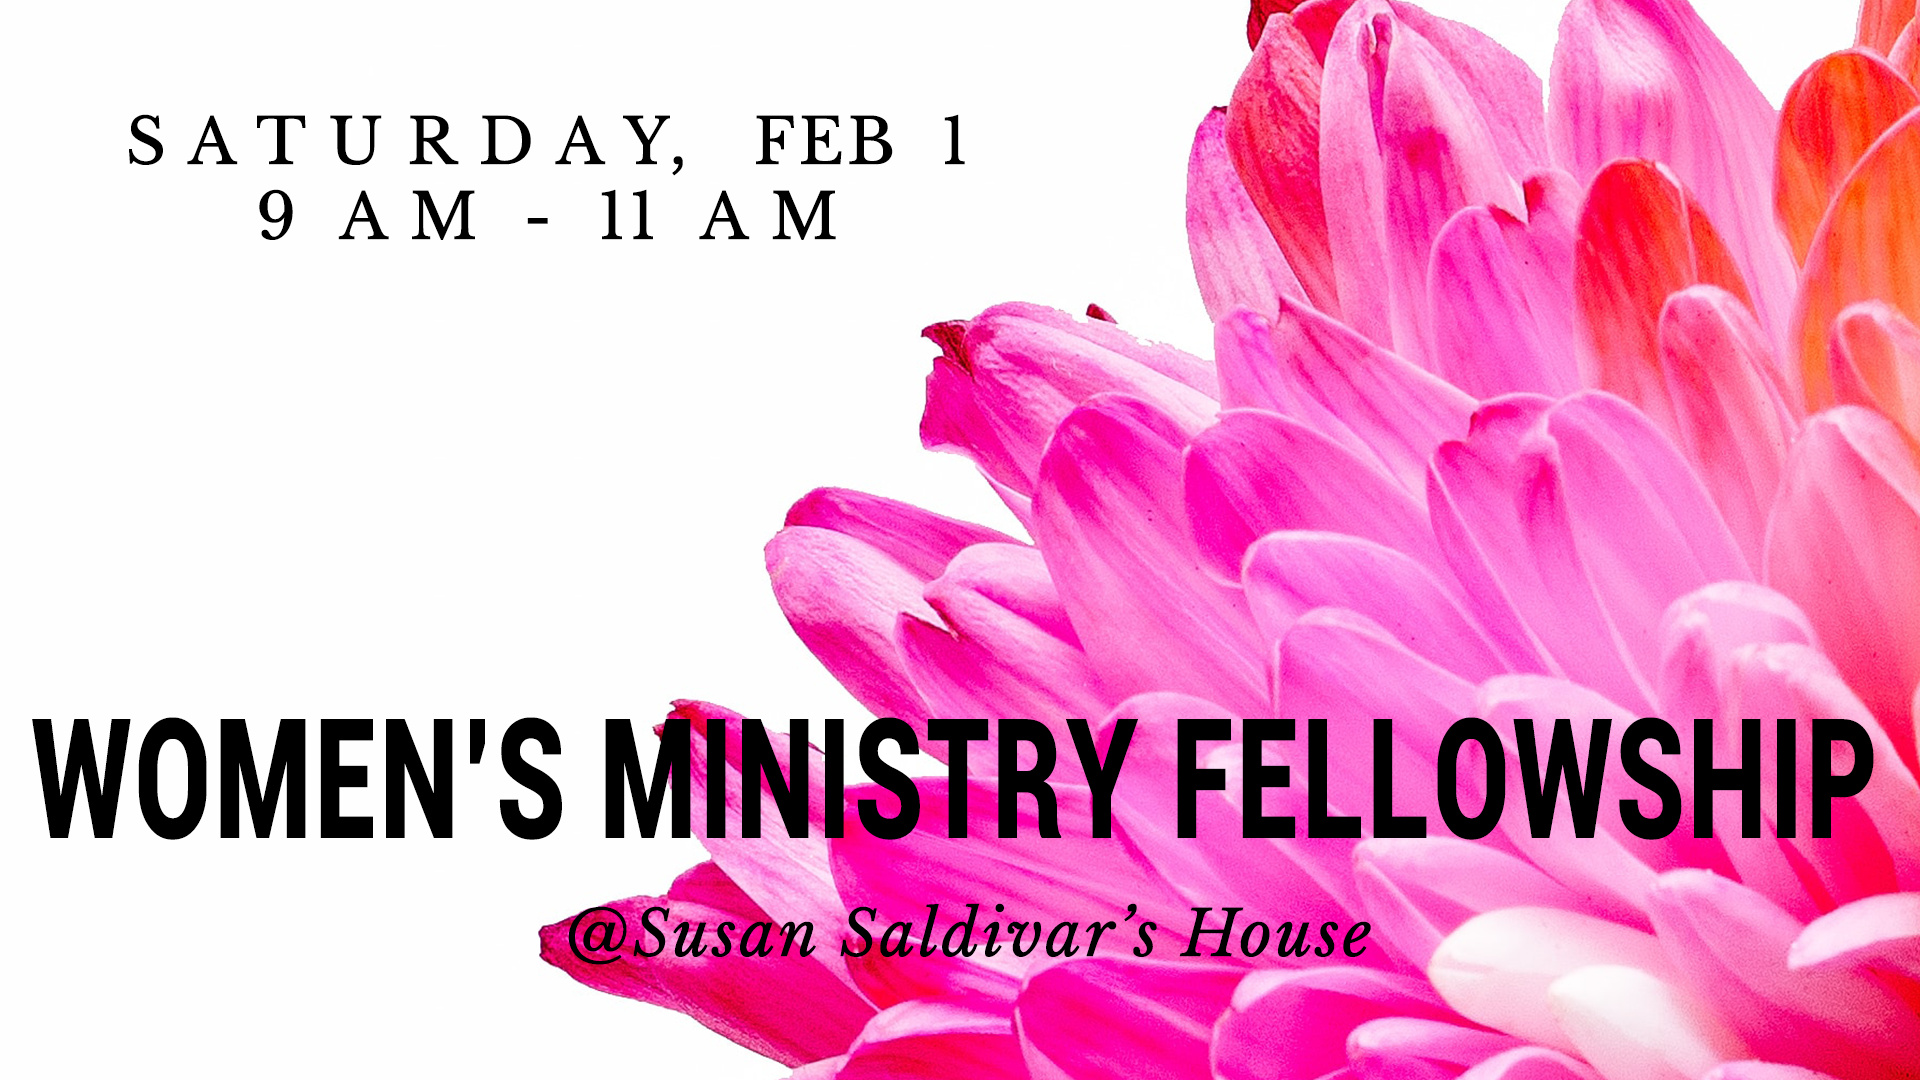 Ladies, our next Women's Ministry Fellowship is Saturday, Feb 1 at 9 AM - Susan Saldivar's house